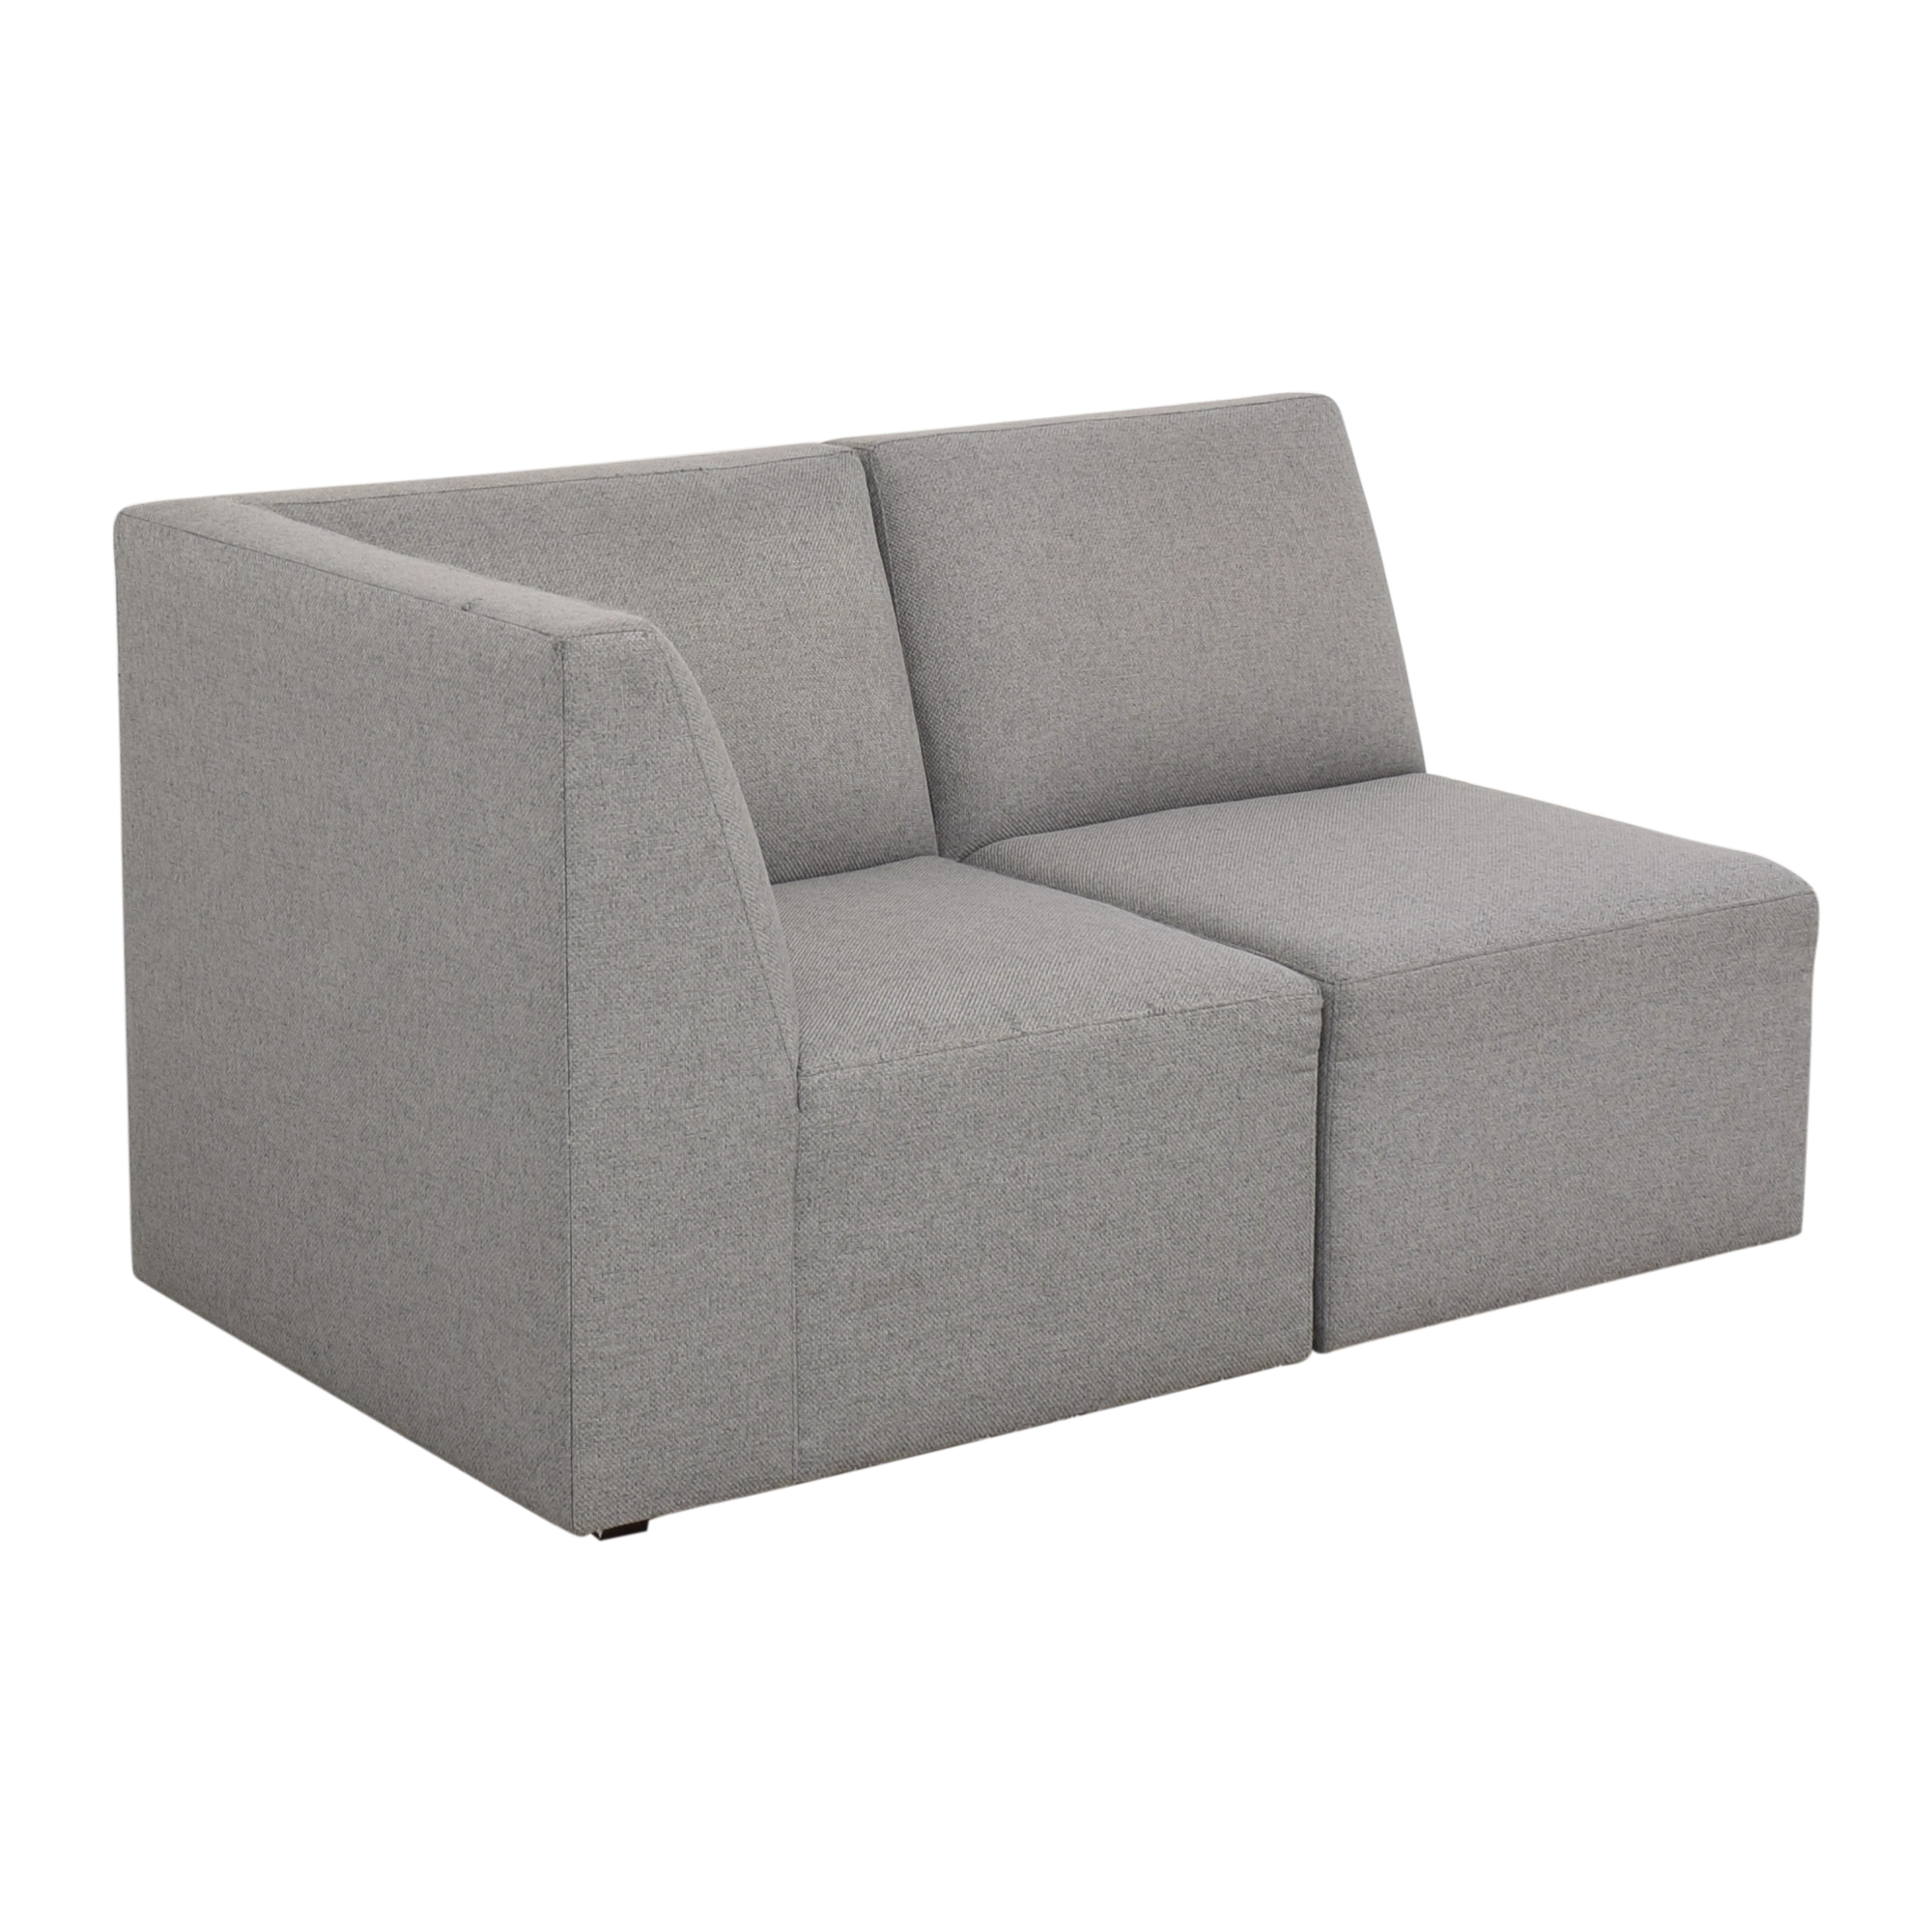 60 Off Cb2 Modern Sectional Sofas